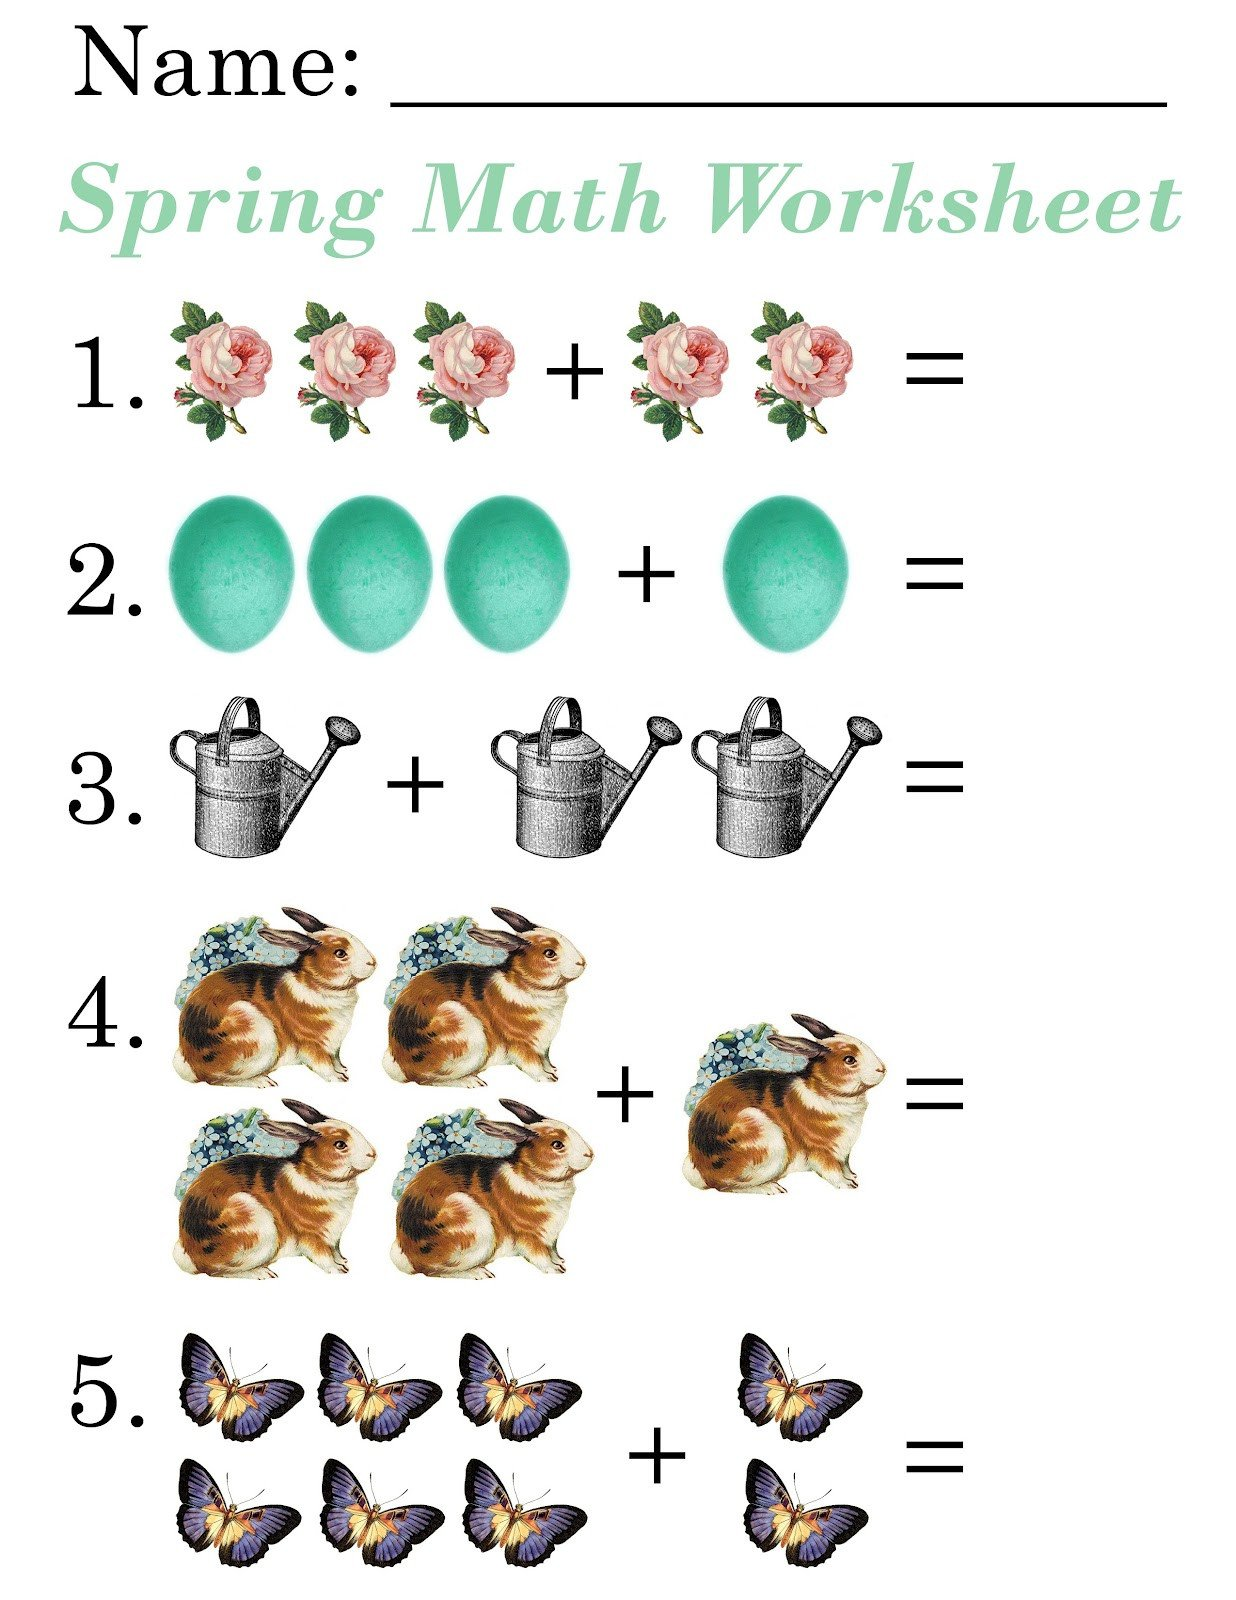 Simple Addition Worksheets for Kindergarten Lilac Lavender Kids Spring Math Worksheets for Simple